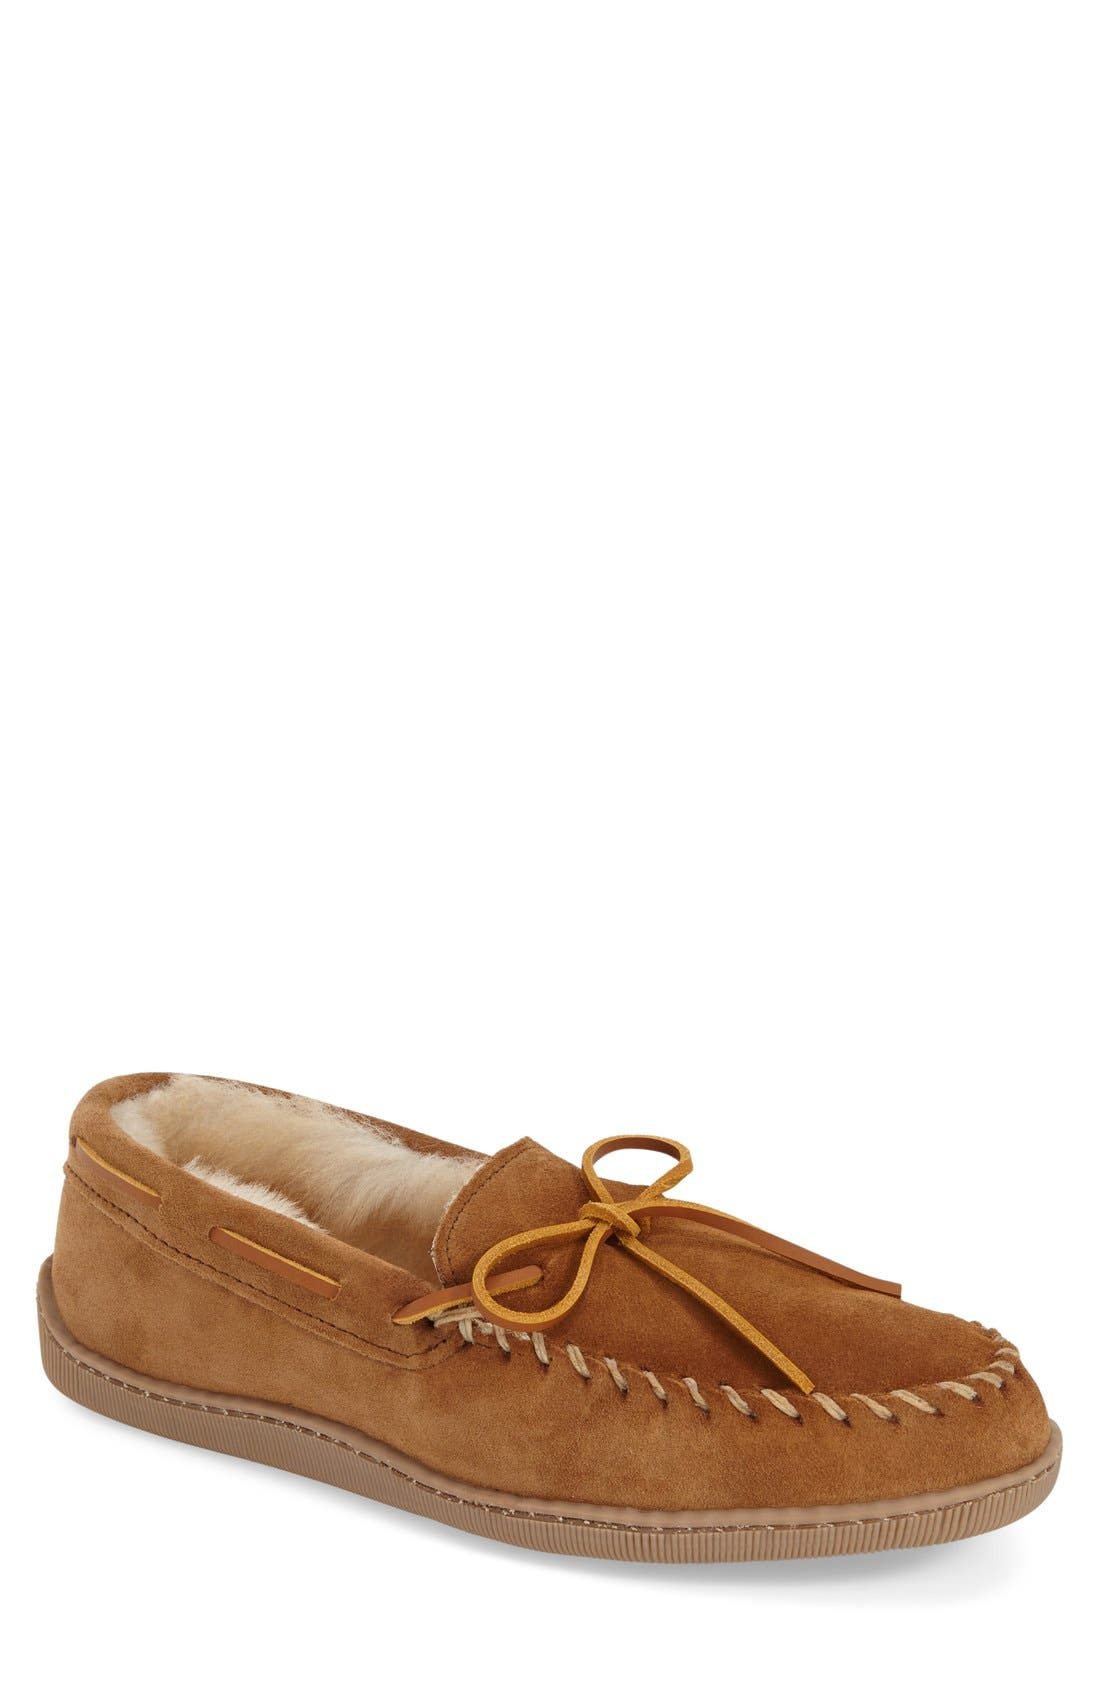 Minnetonka Genuine Shearling Moccasin Slipper (Men)